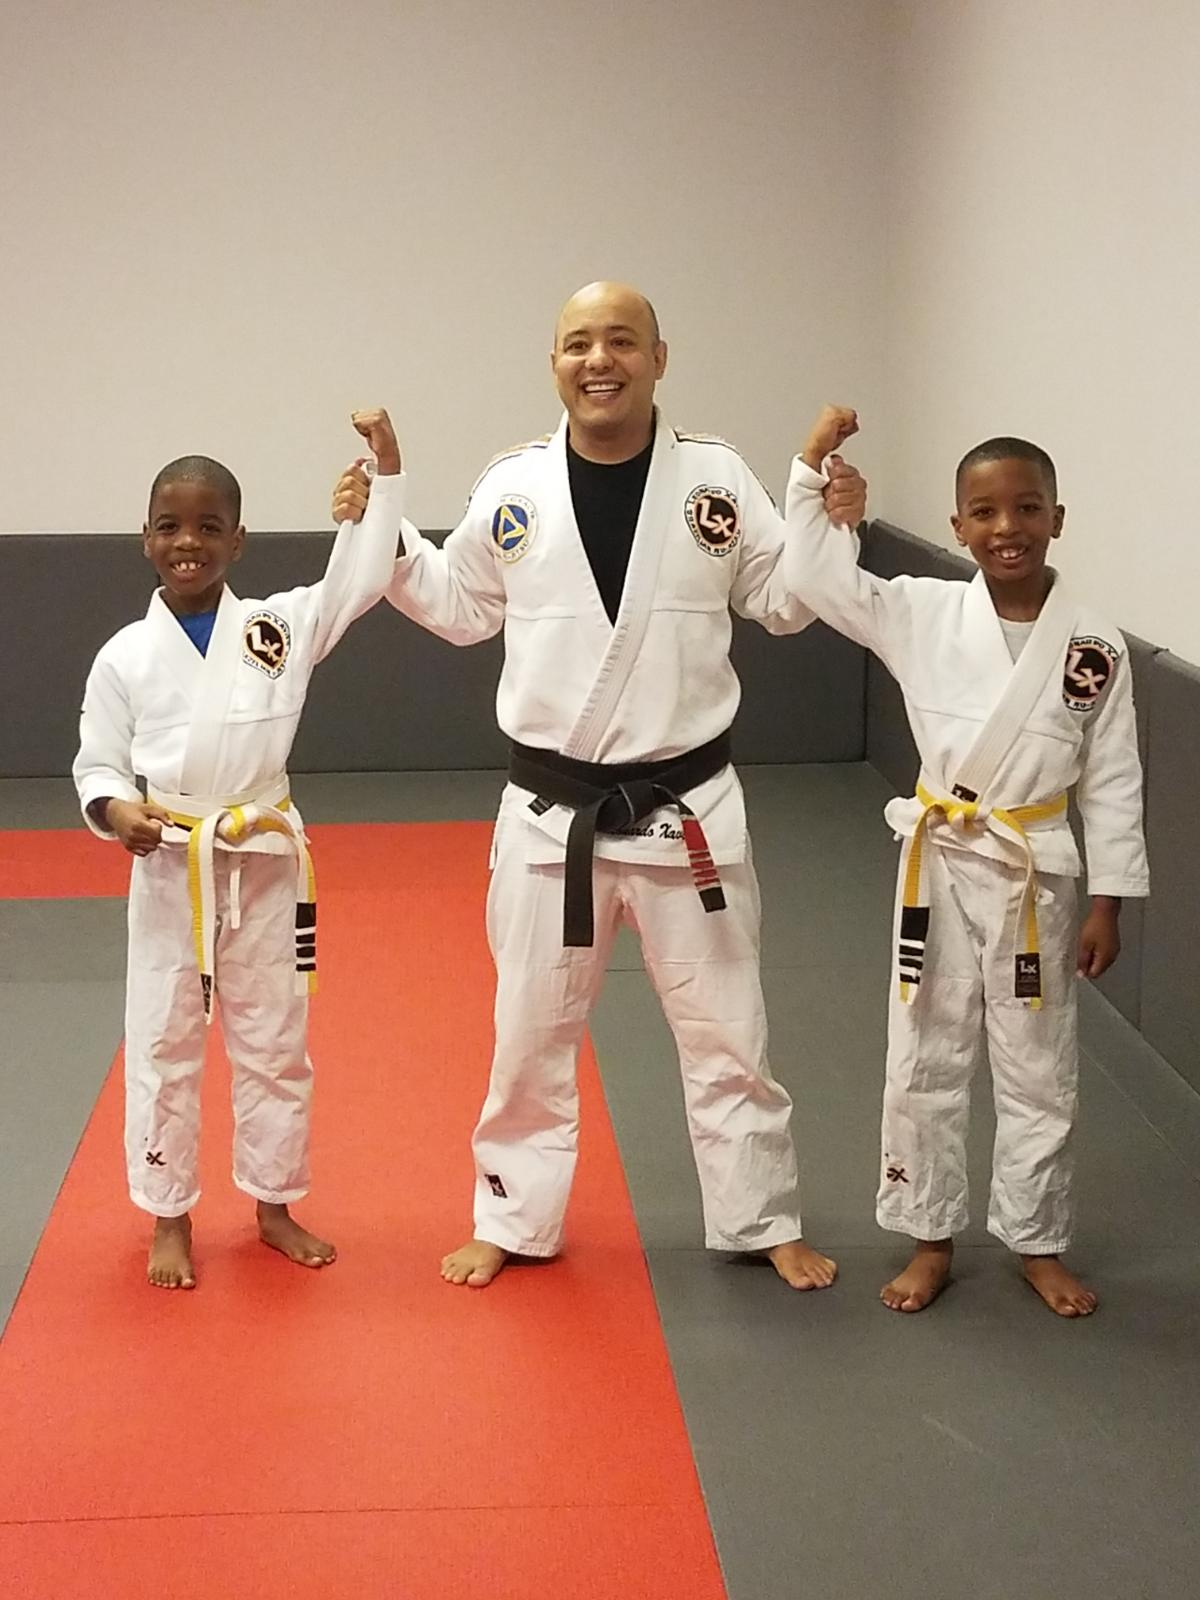 David & Joshua belt promotion - Brazilian Jiu-Jitsu